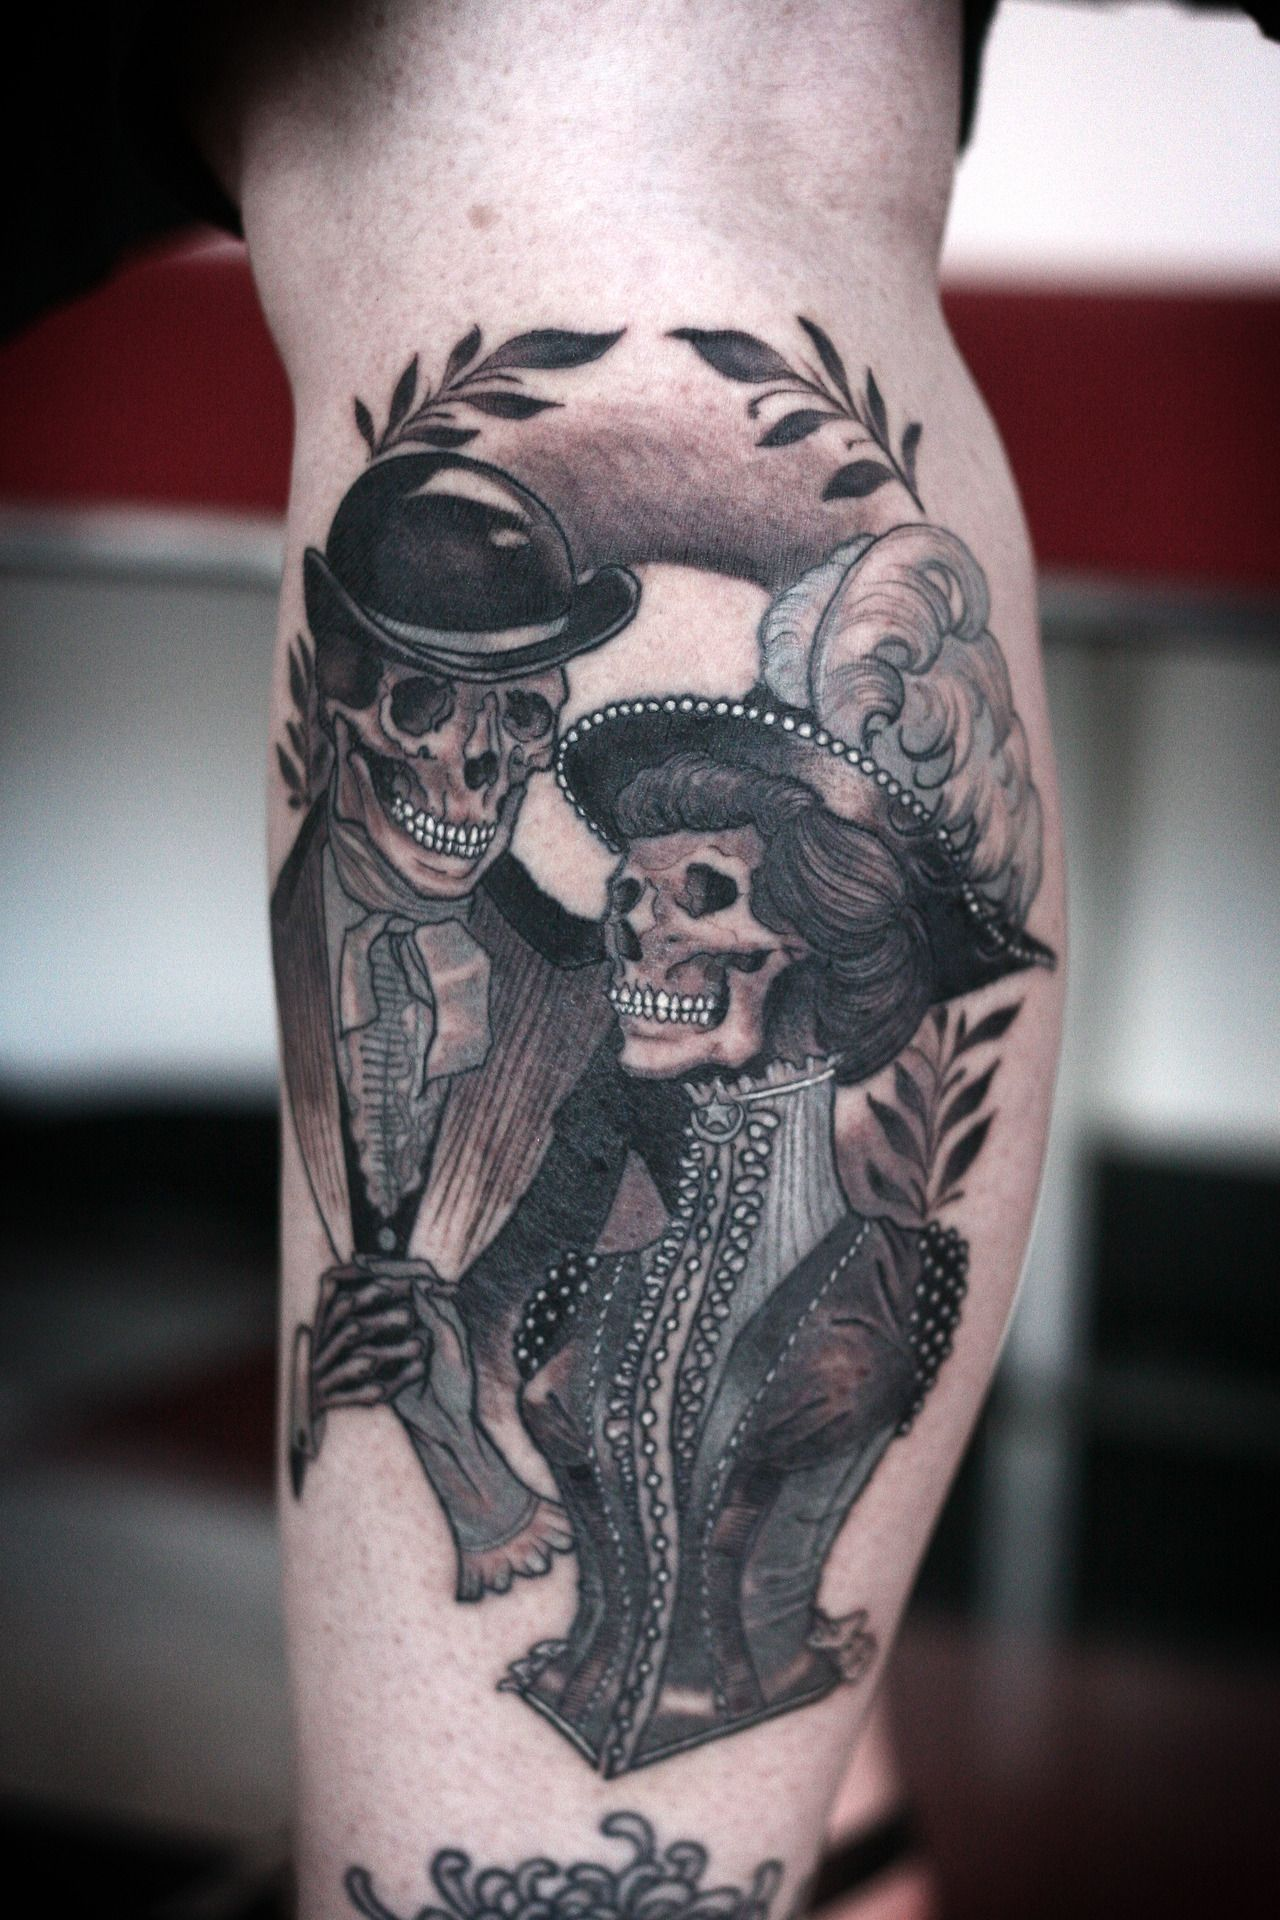 Black king tattoo ideas  amazing body artwork pictures that will make you to get a tattoo